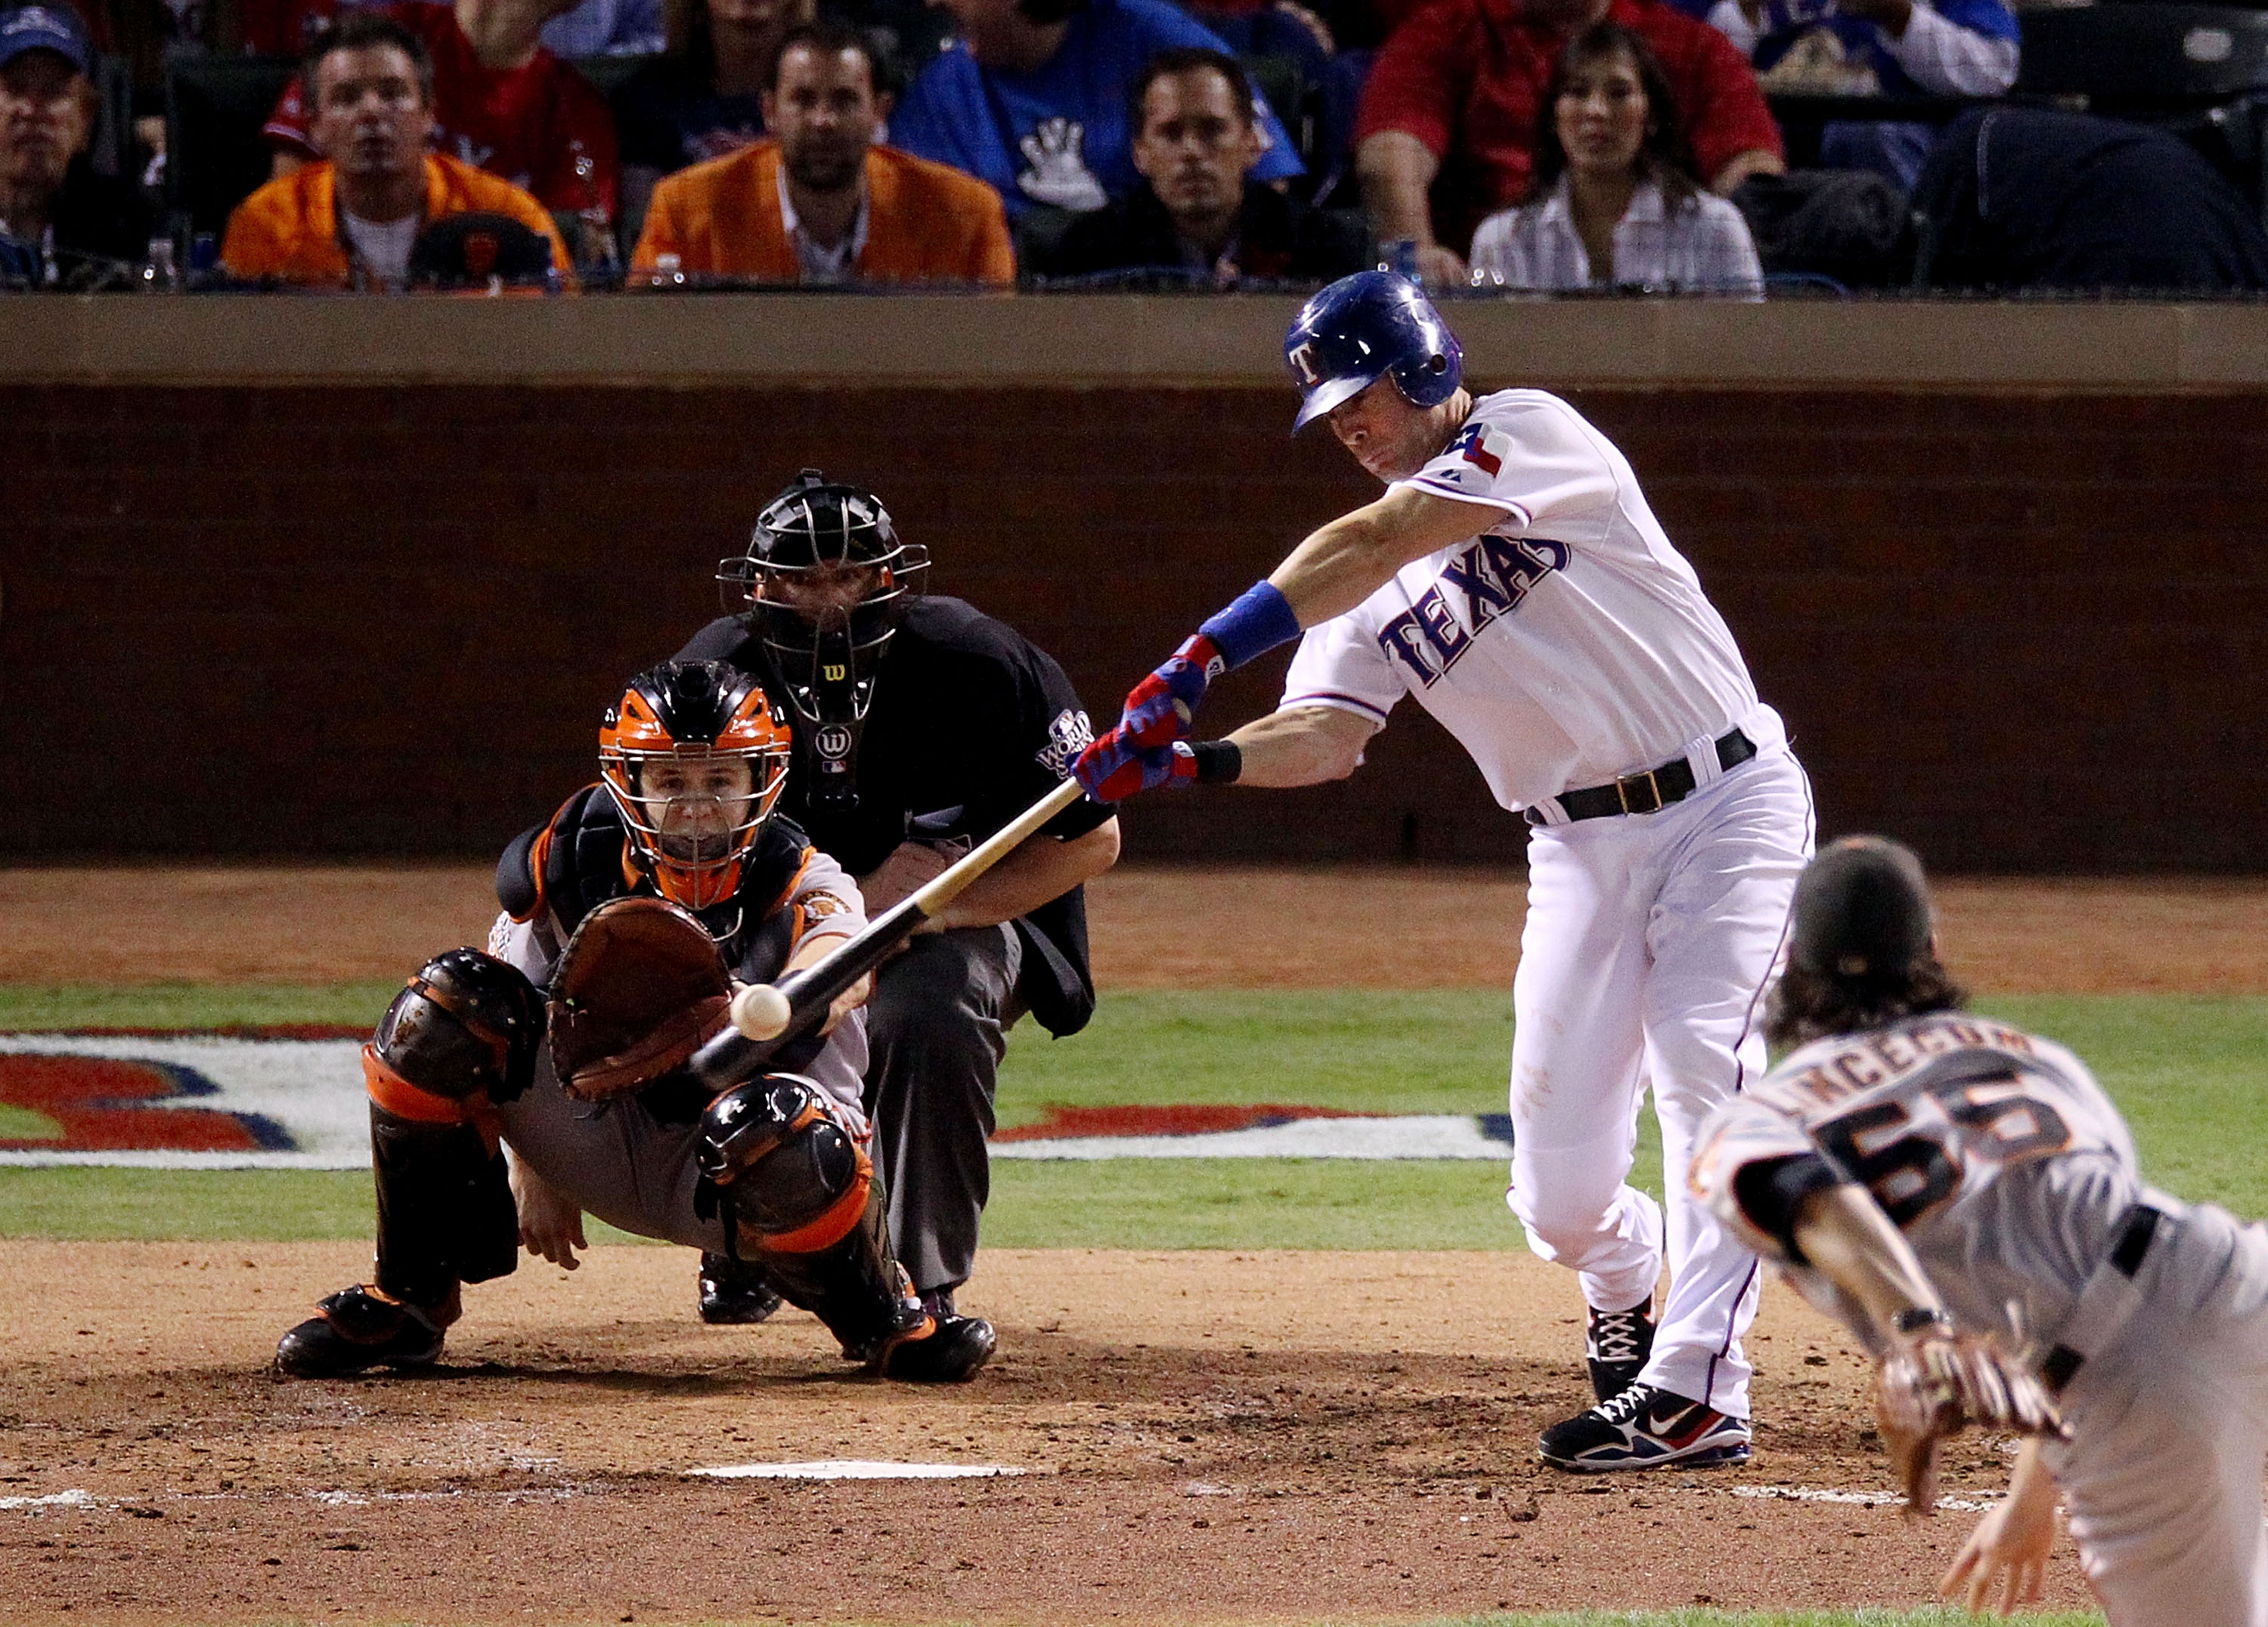 ARLINGTON, TX - NOVEMBER 01: Michael Young #10 of the Texas Rangers hits a single off starting pitcher Tim Lincecum #55 of the San Francisco Giants in the fifth inning of Game Five of the 2010 MLB World Series at Rangers Ballpark in Arlington on November